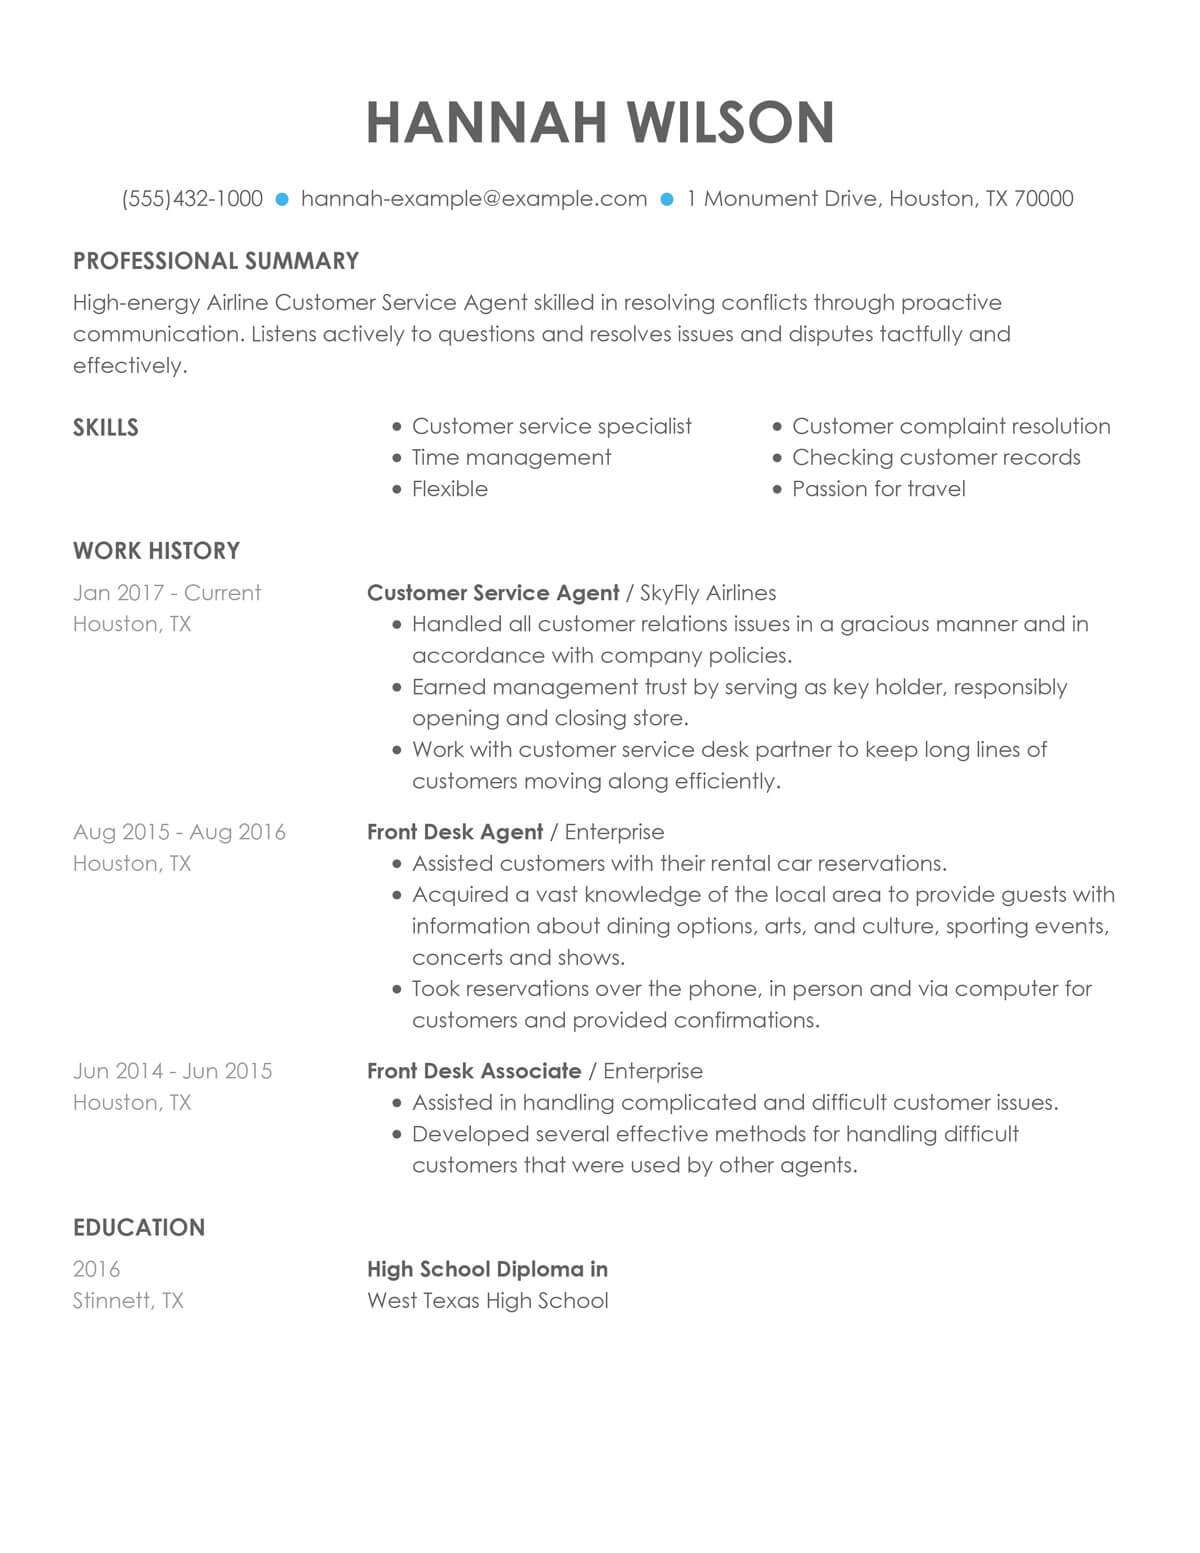 customize our customer representative resume example service headline for airline agent Resume Customer Service Headline For Resume